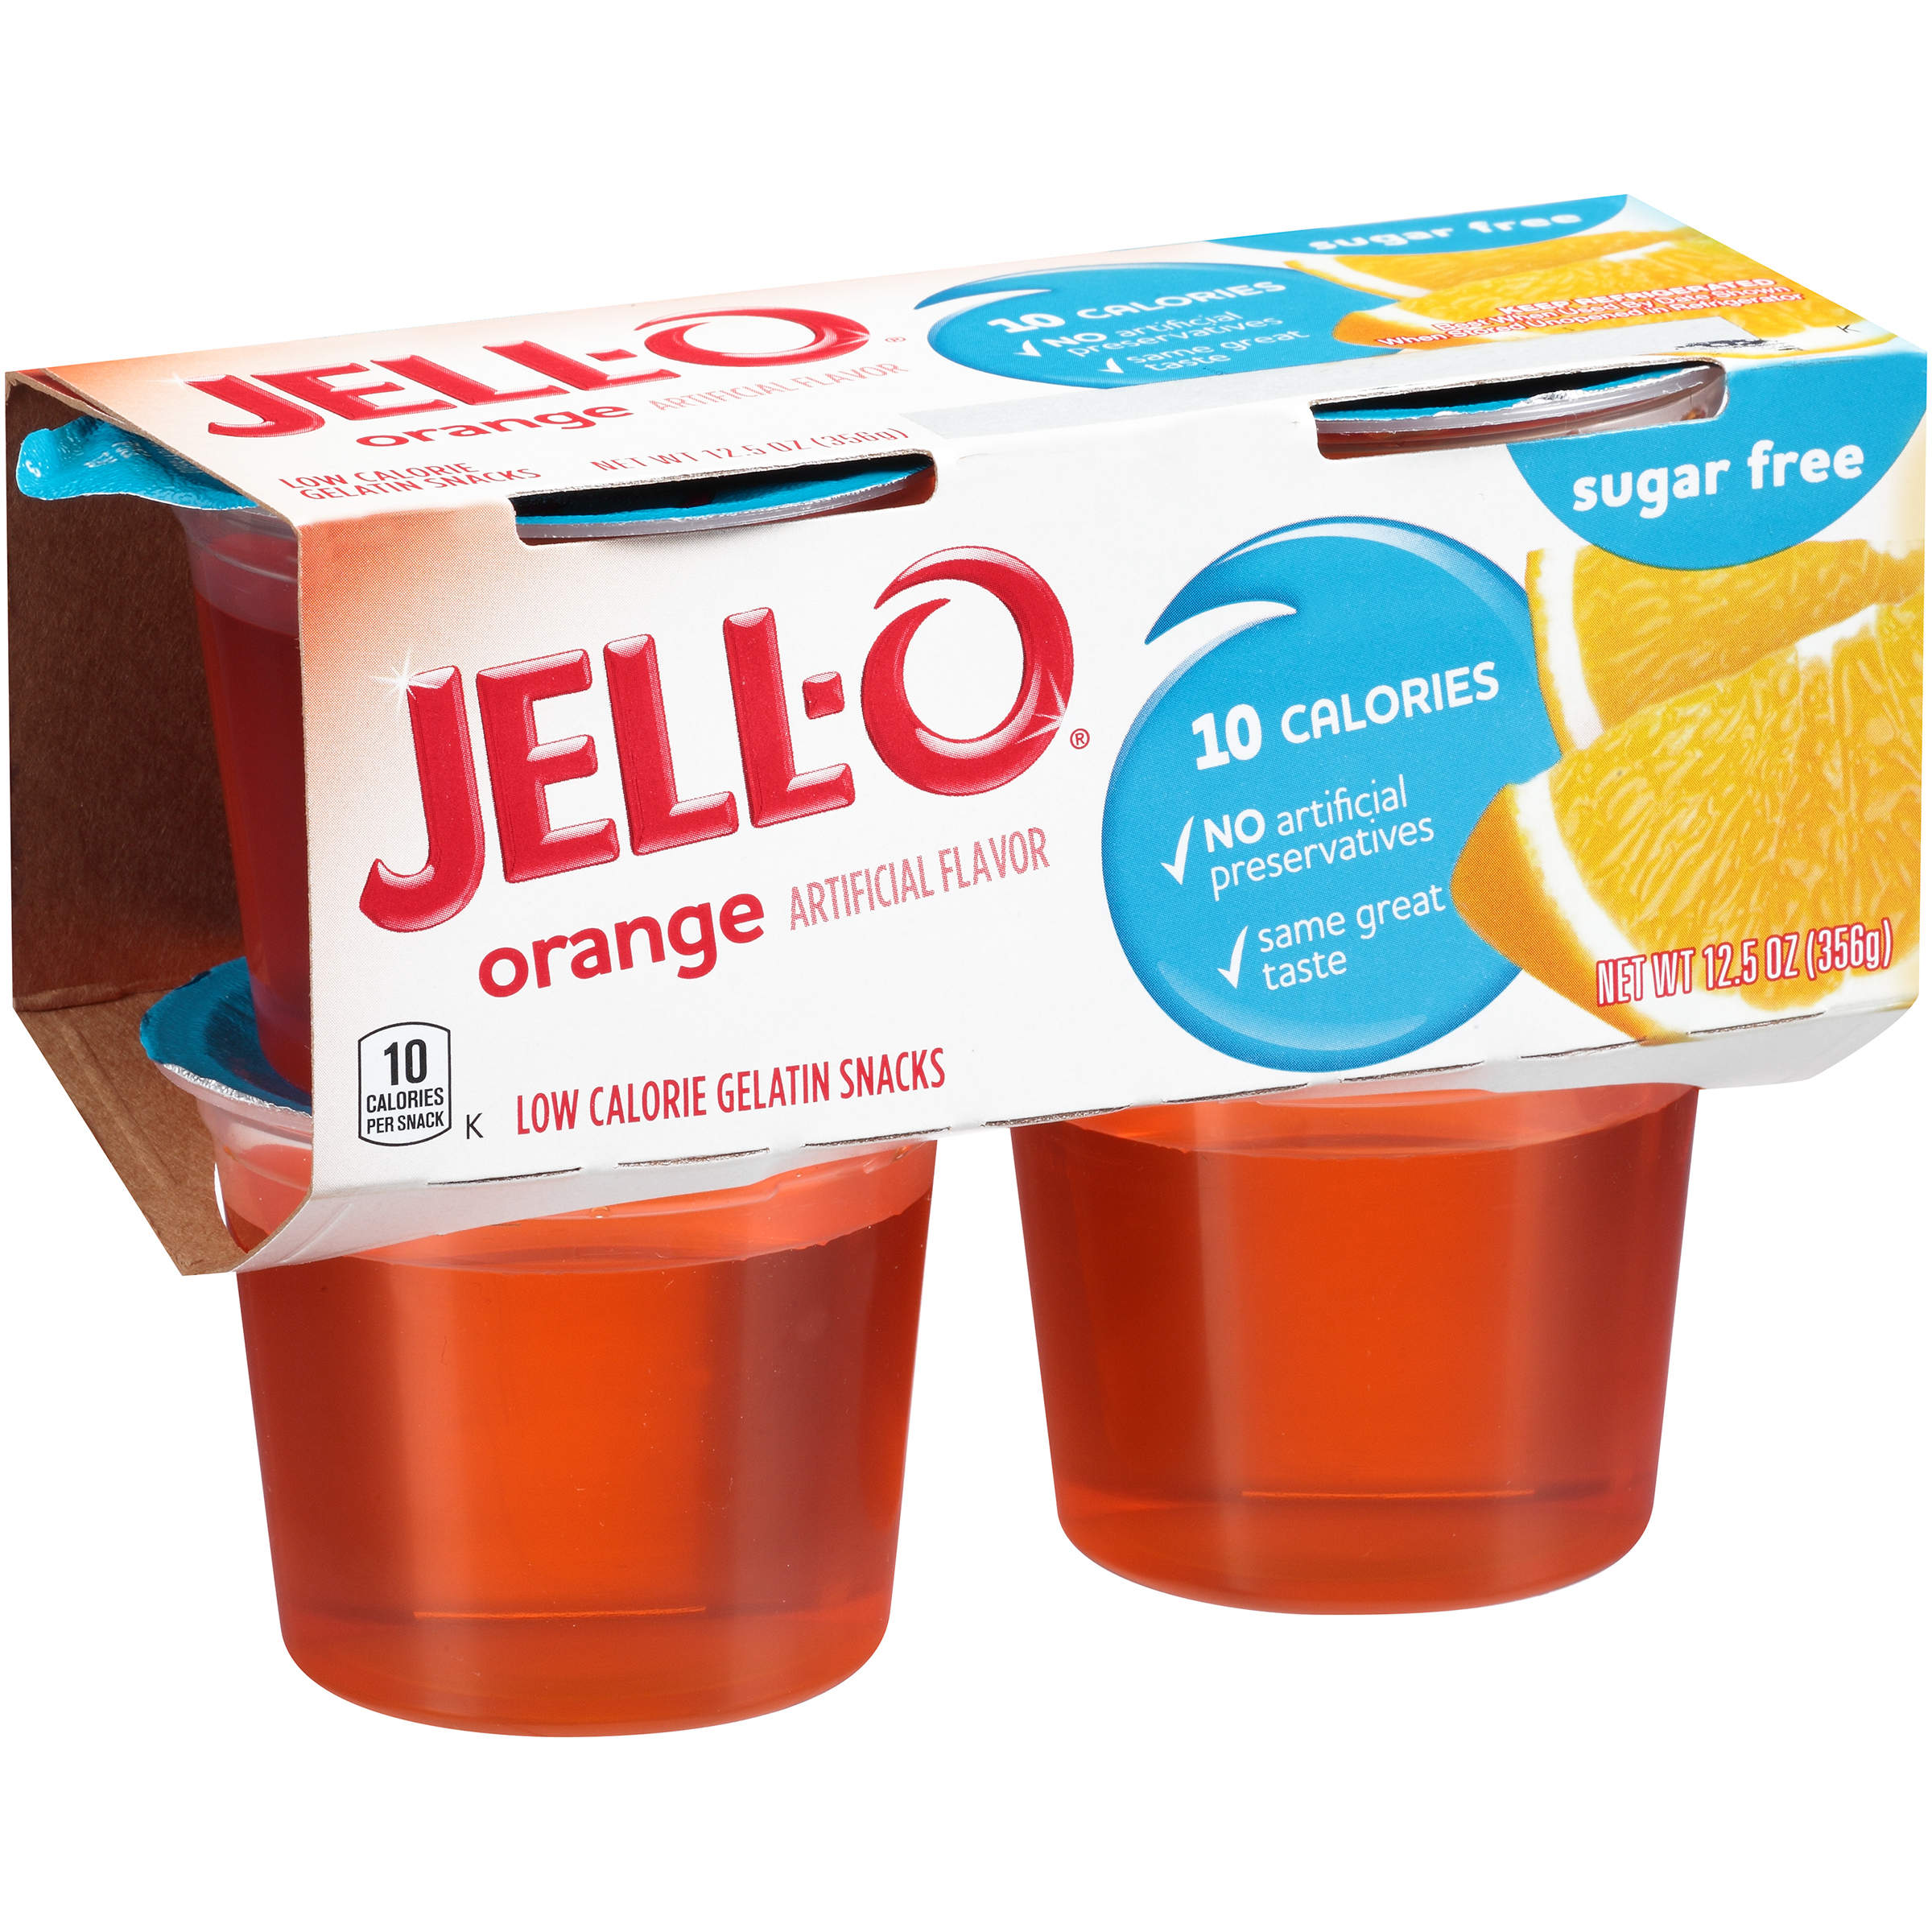 Jell-O Sugar-Free Orange Gelatin Snack, 3.125 Oz., 4 Count